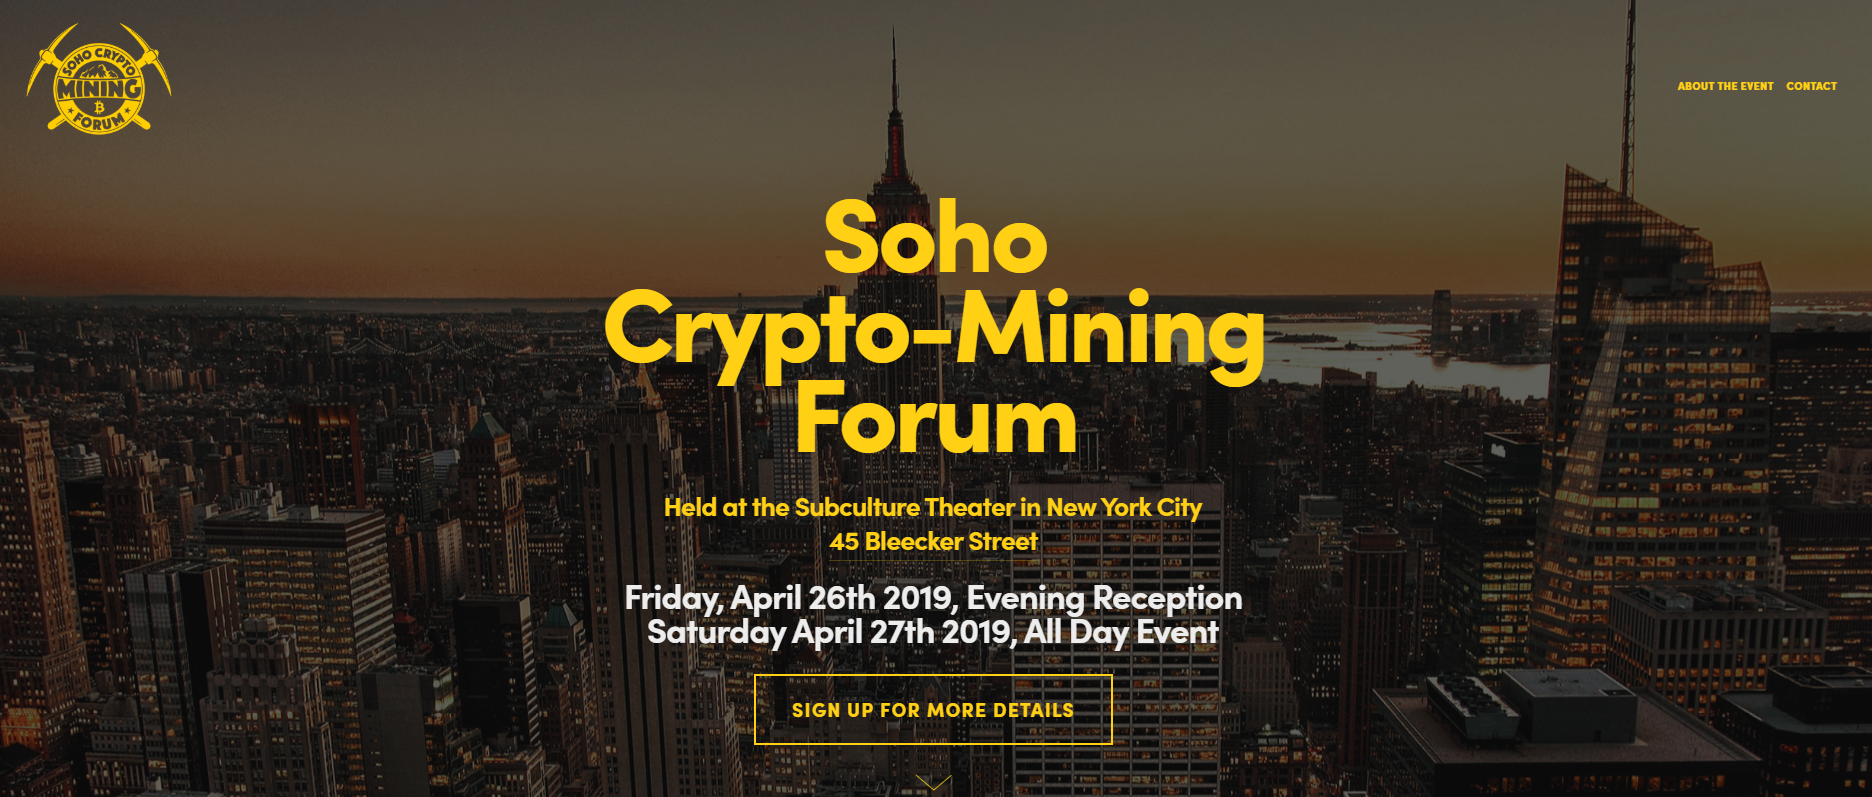 Soho crypto mining forum